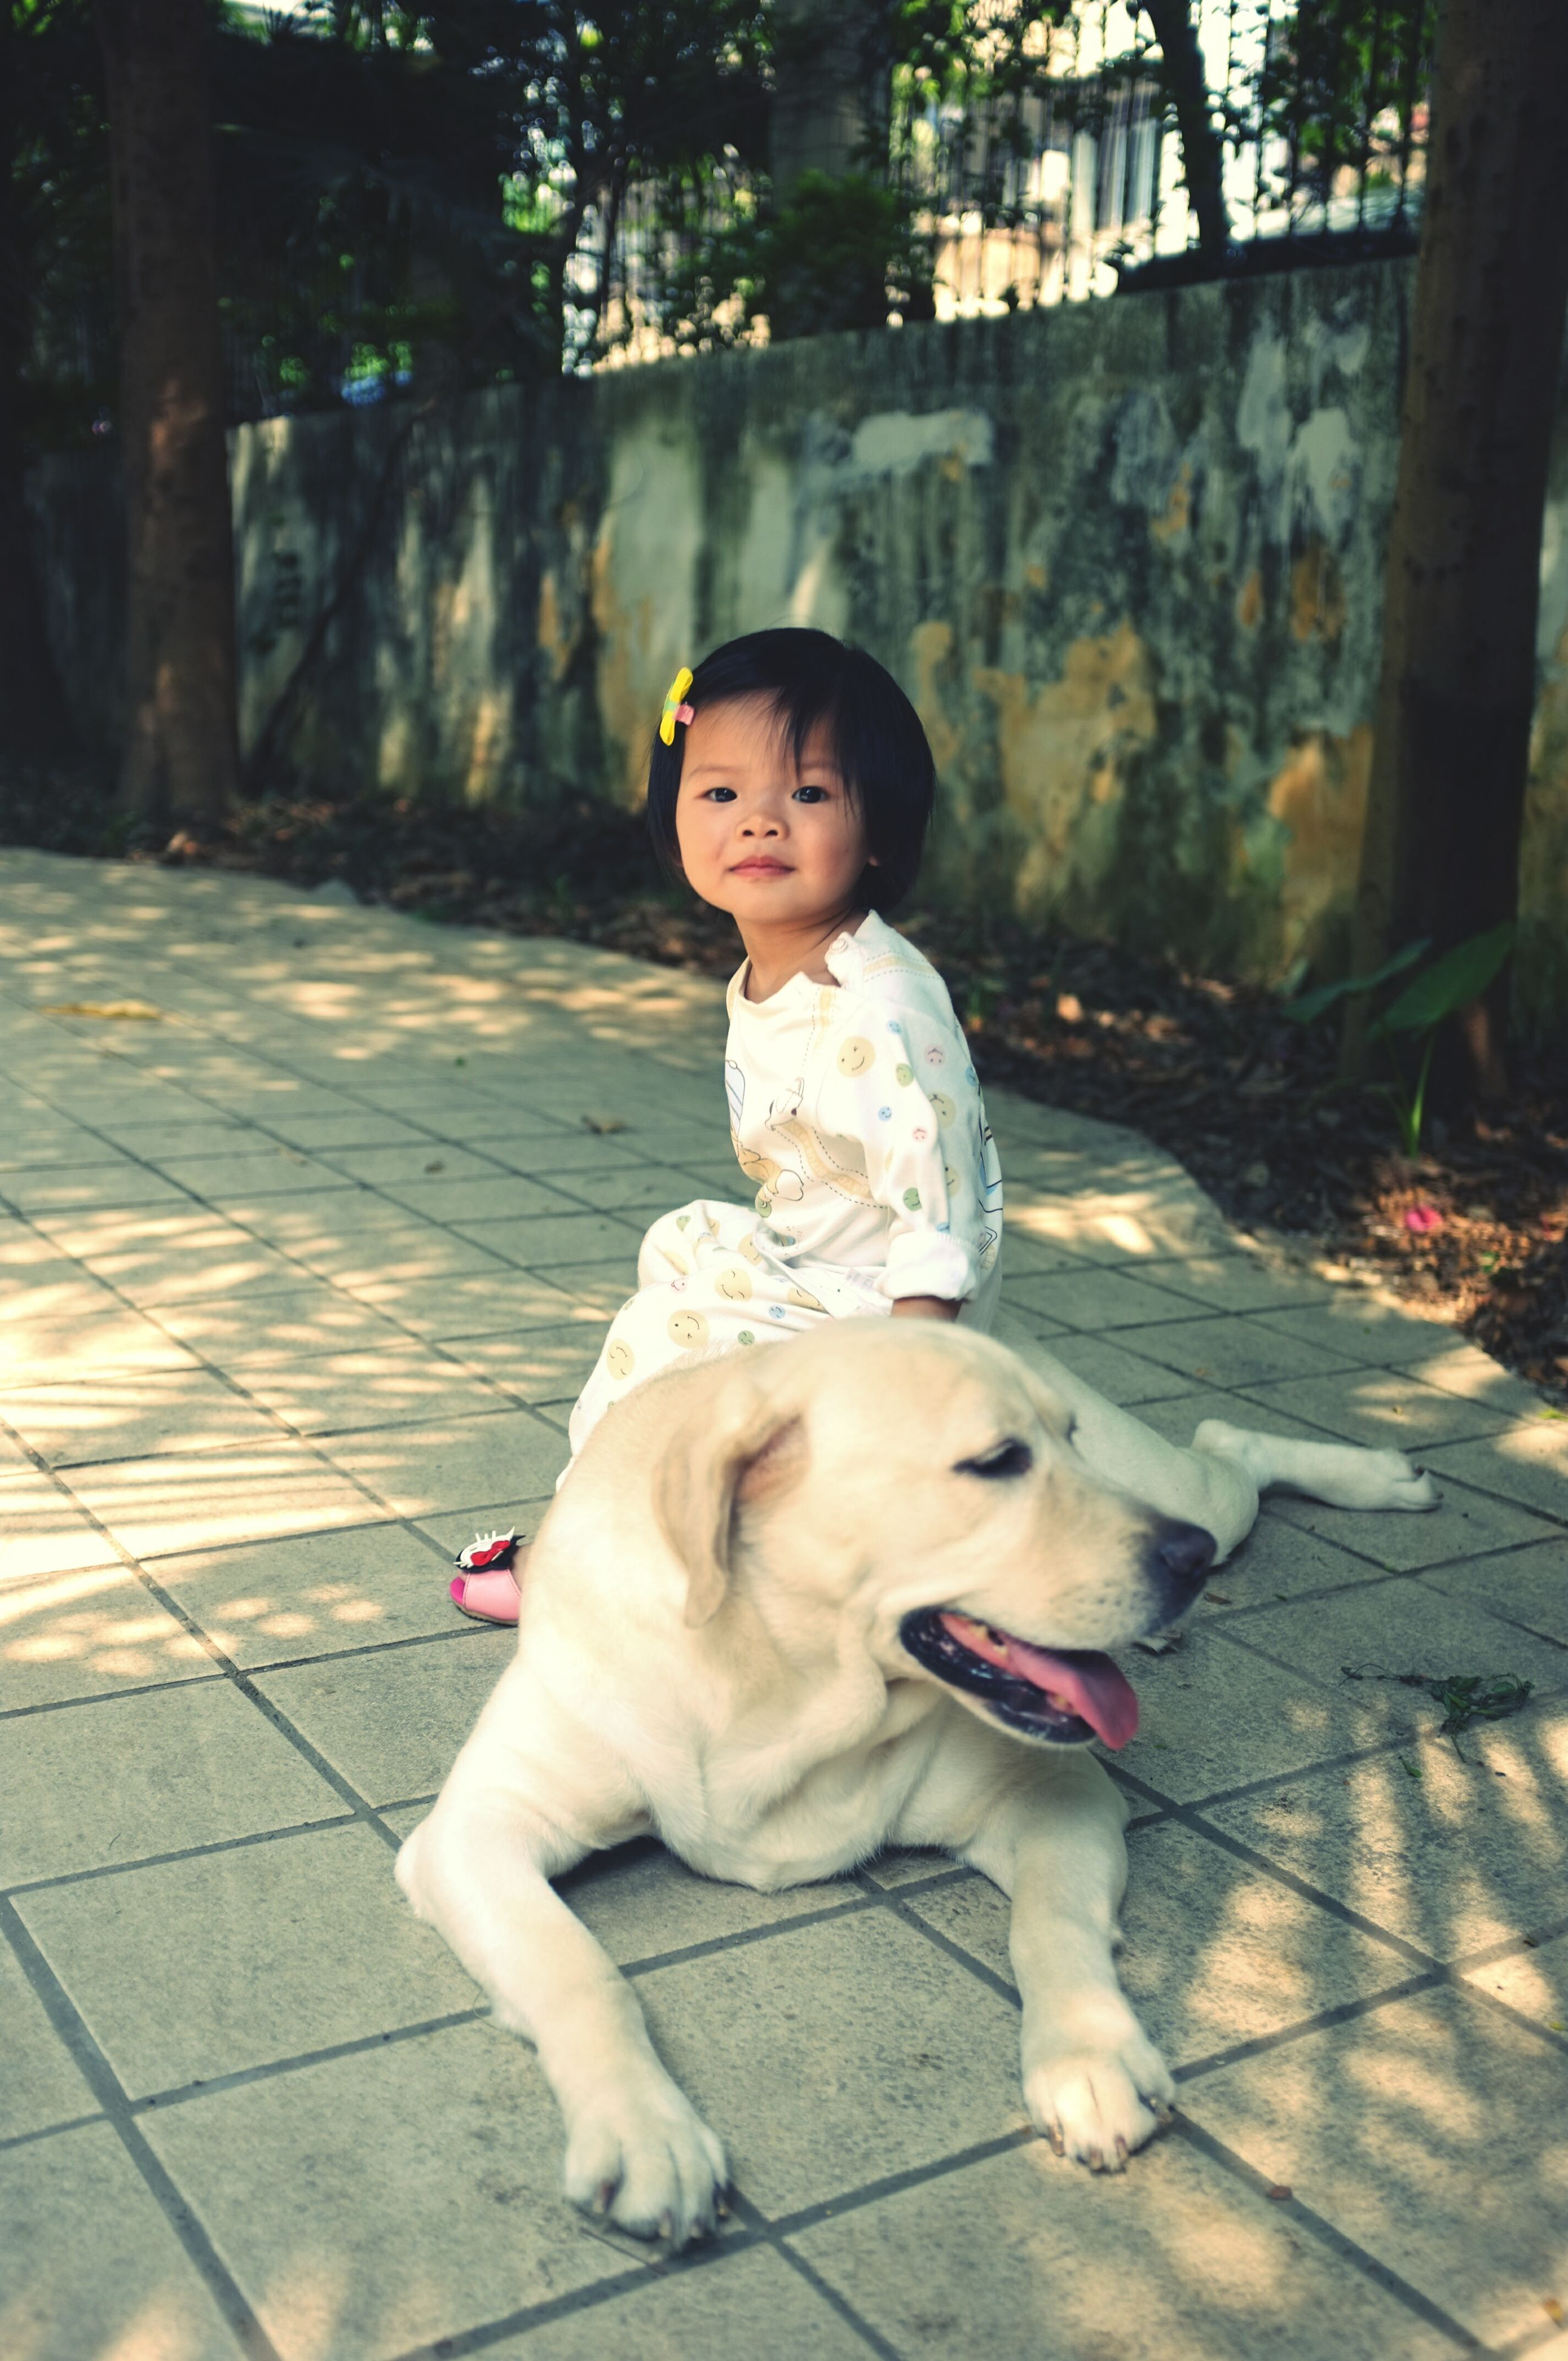 dog, pets, full length, childhood, cute, looking at camera, portrait, elementary age, sitting, person, animal themes, one animal, innocence, domestic animals, mammal, front view, girls, boys